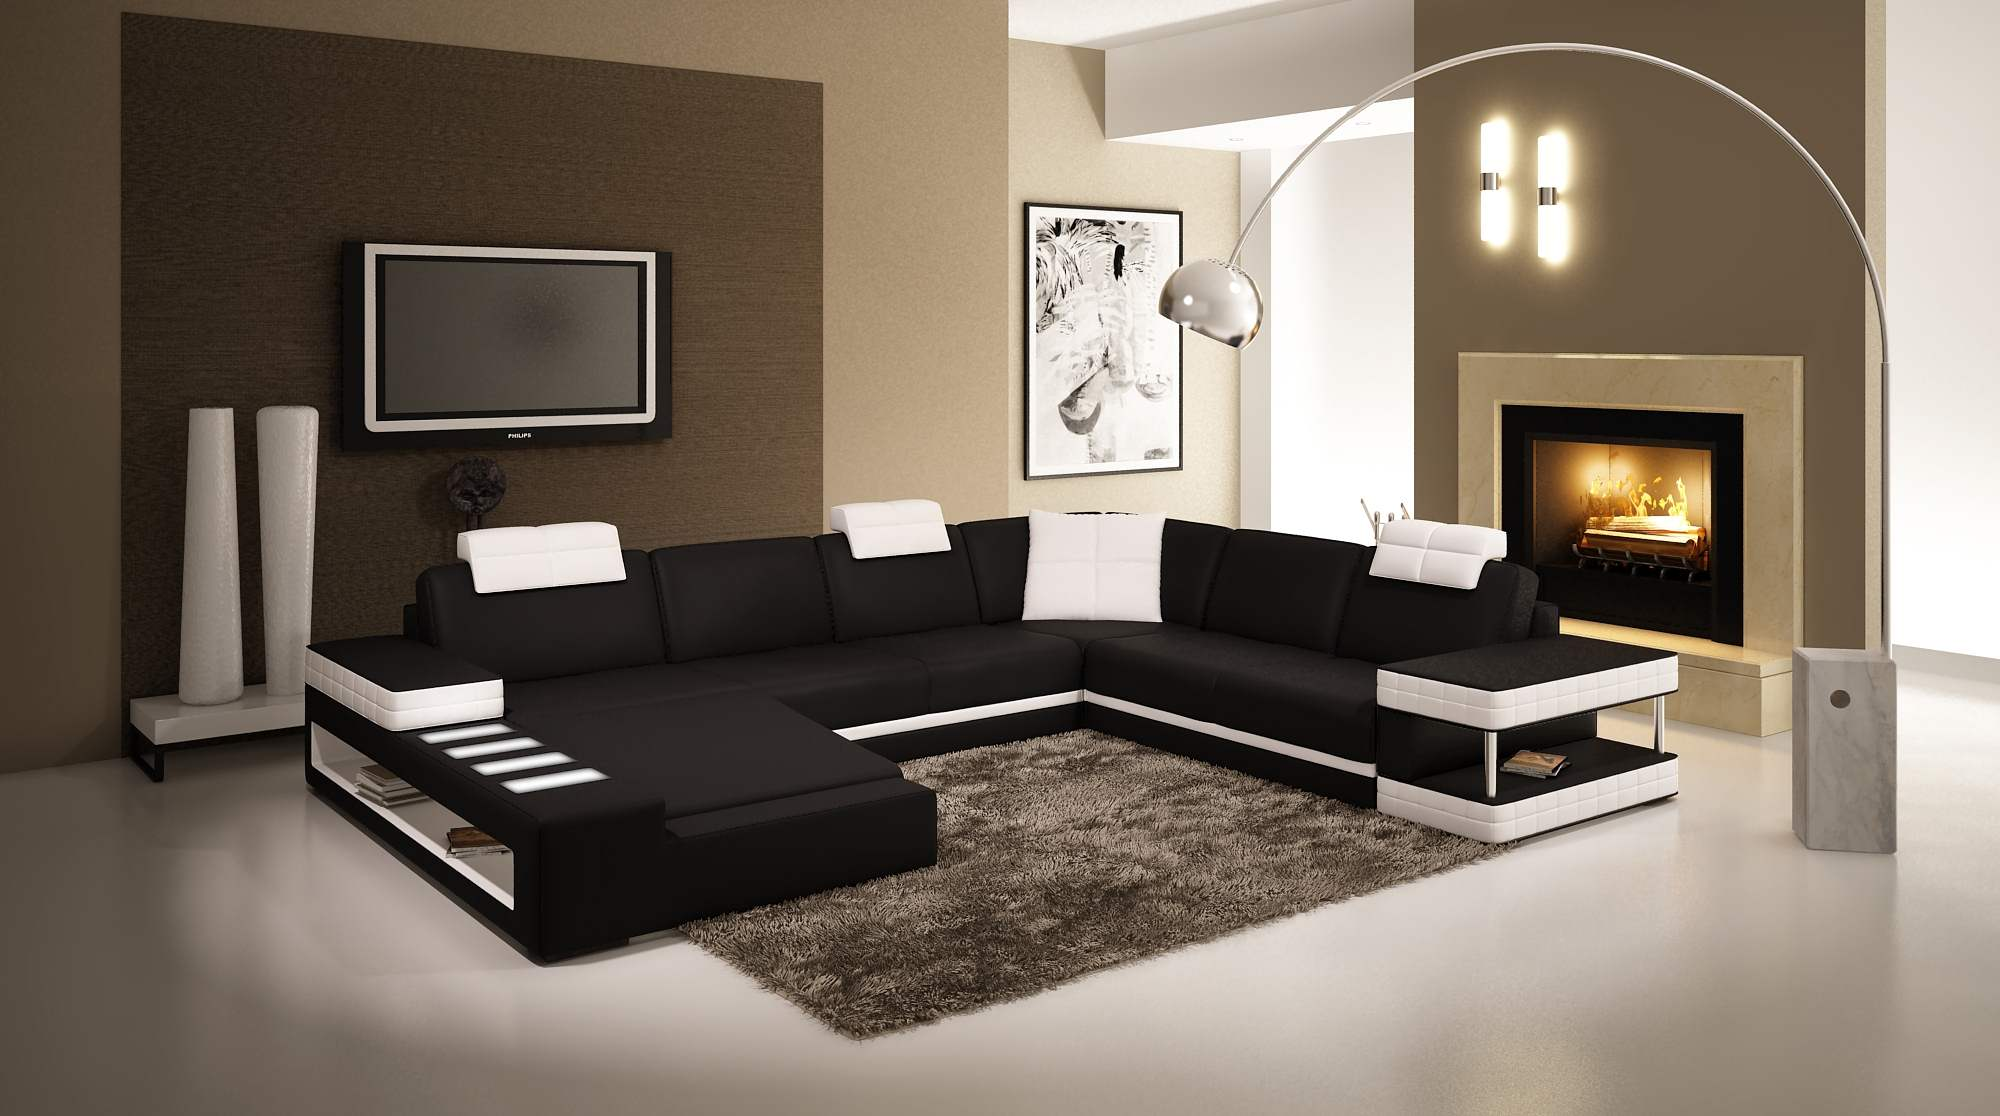 Deco in paris canape d angle panoramique en cuir noir et for Living room designs 2014